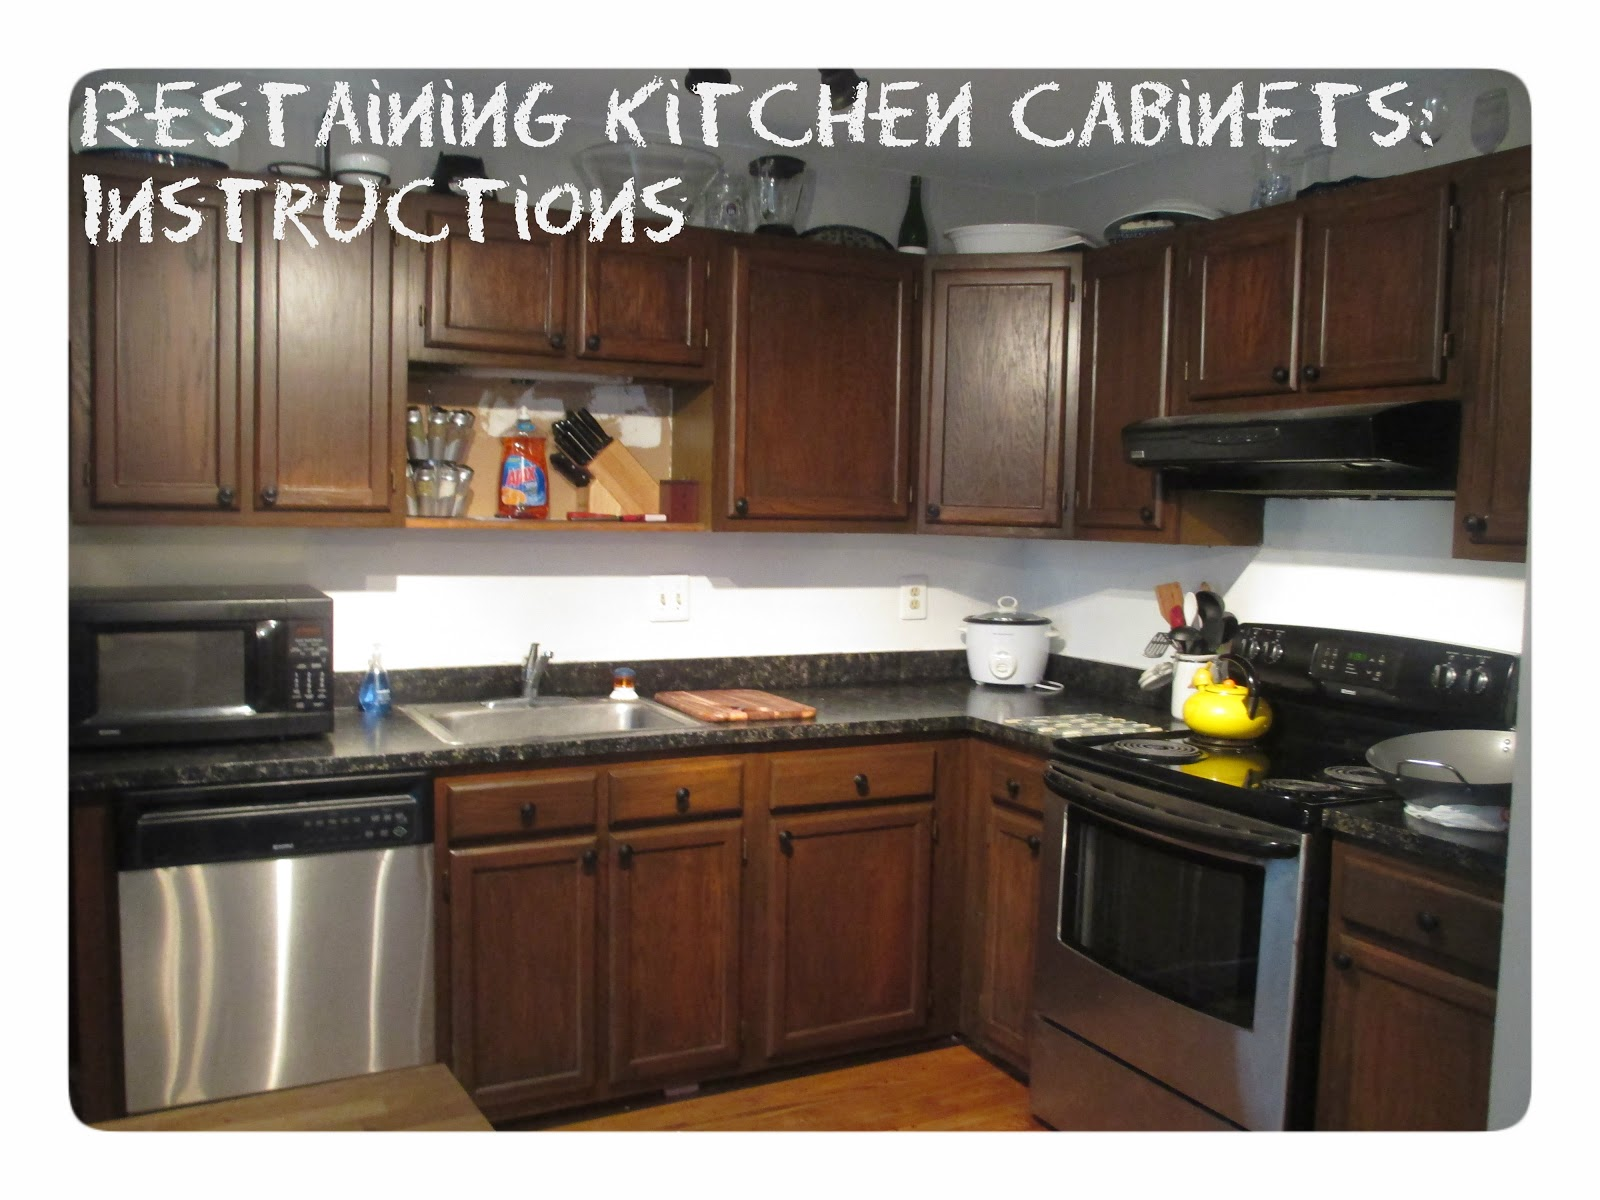 How To Stain Wood Cabinets In Kitchen. Living Room Interior Images. Living Room With Dining. Pinterest Decorating Living Room. Living Room Skylight. Fine Living Room Furniture. Spotlights In Living Room. Vintage Industrial Living Room. Art Pieces For Living Room